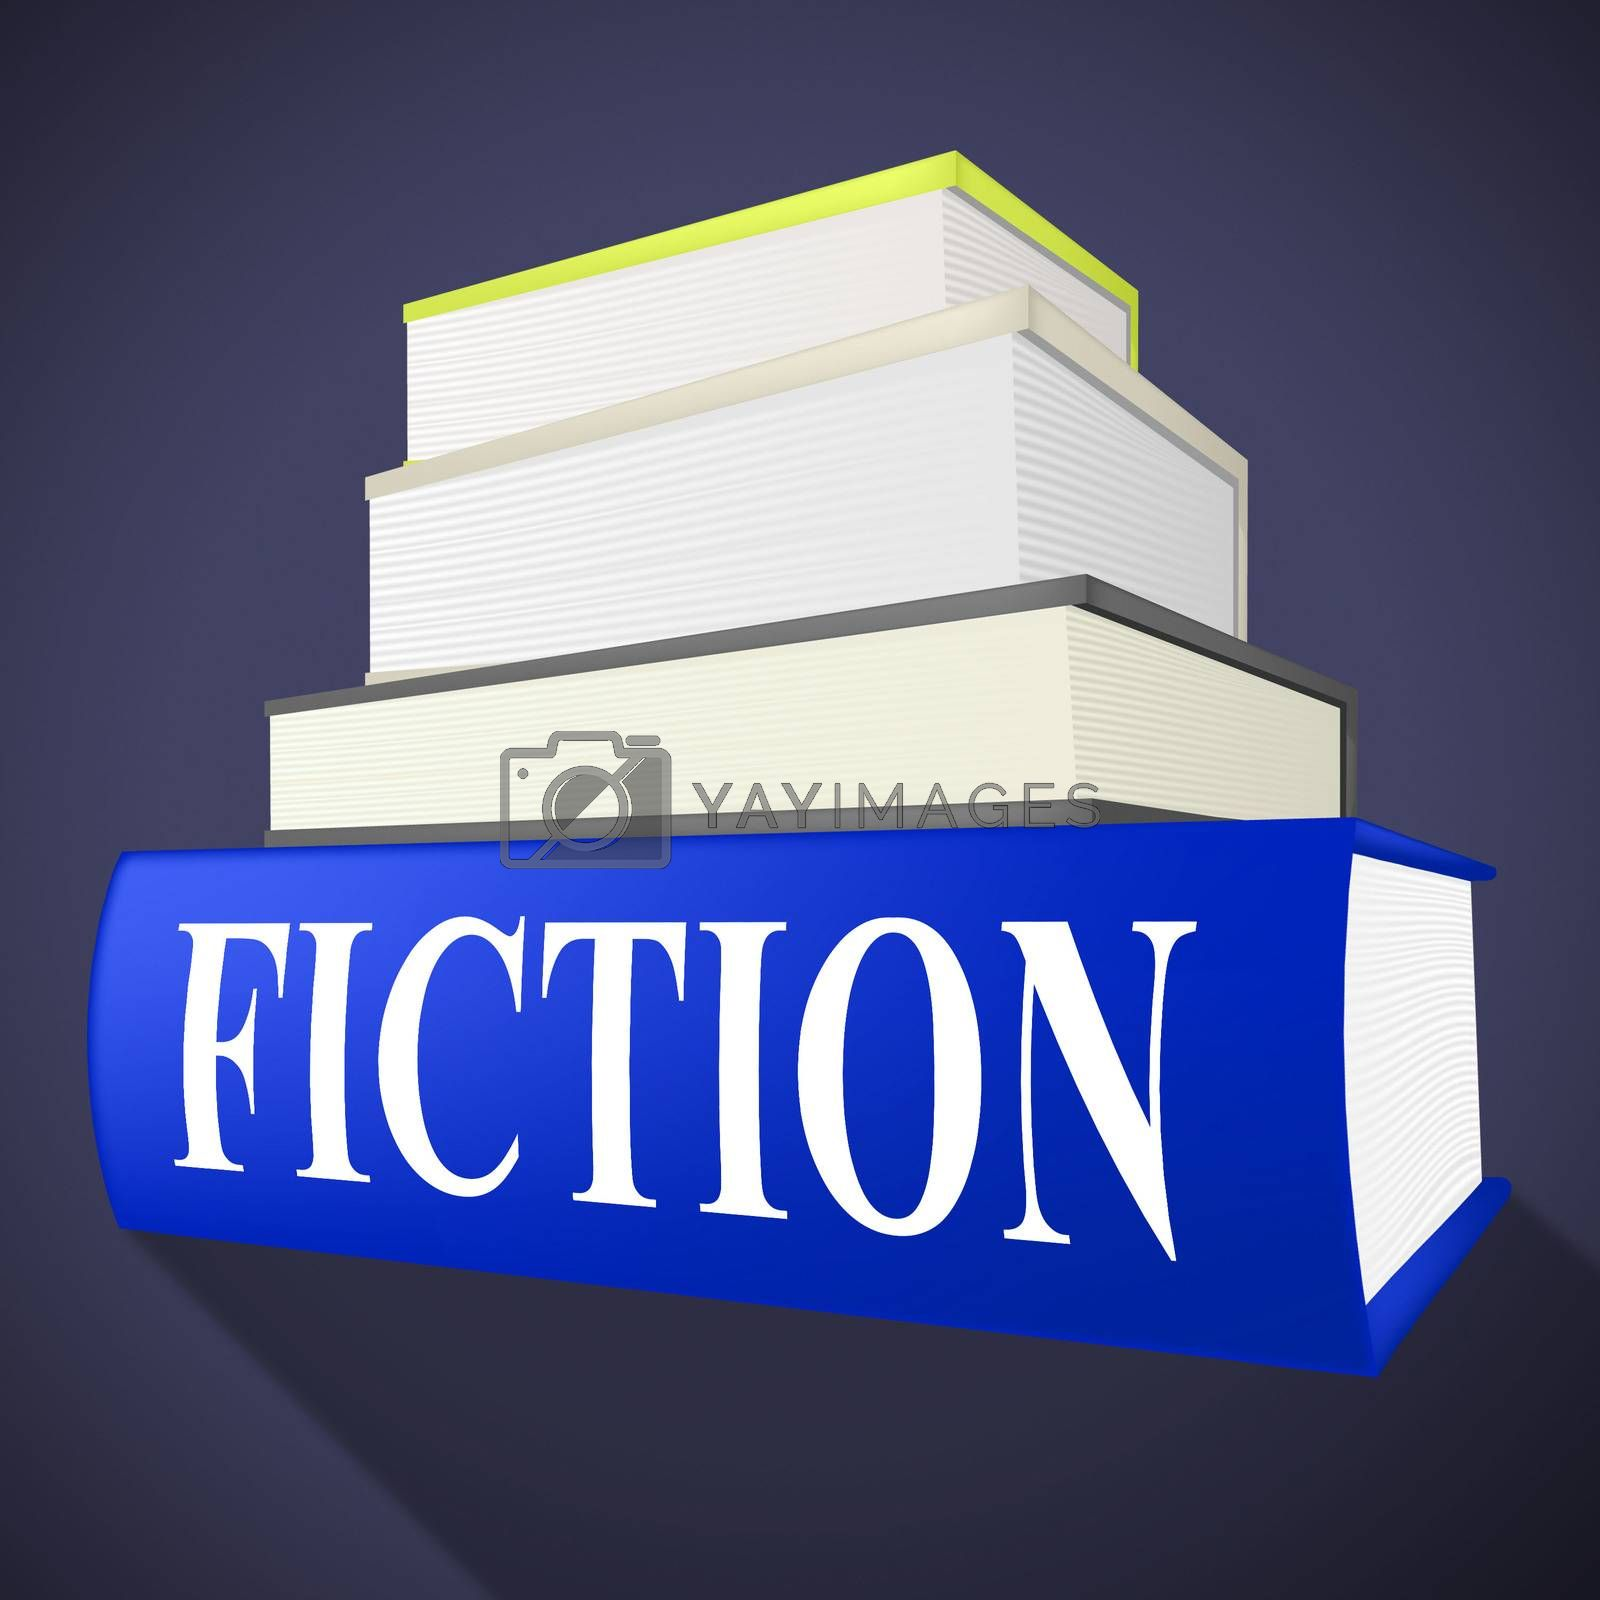 Fiction Book Indicates Imaginative Writing And Books by stuartmiles